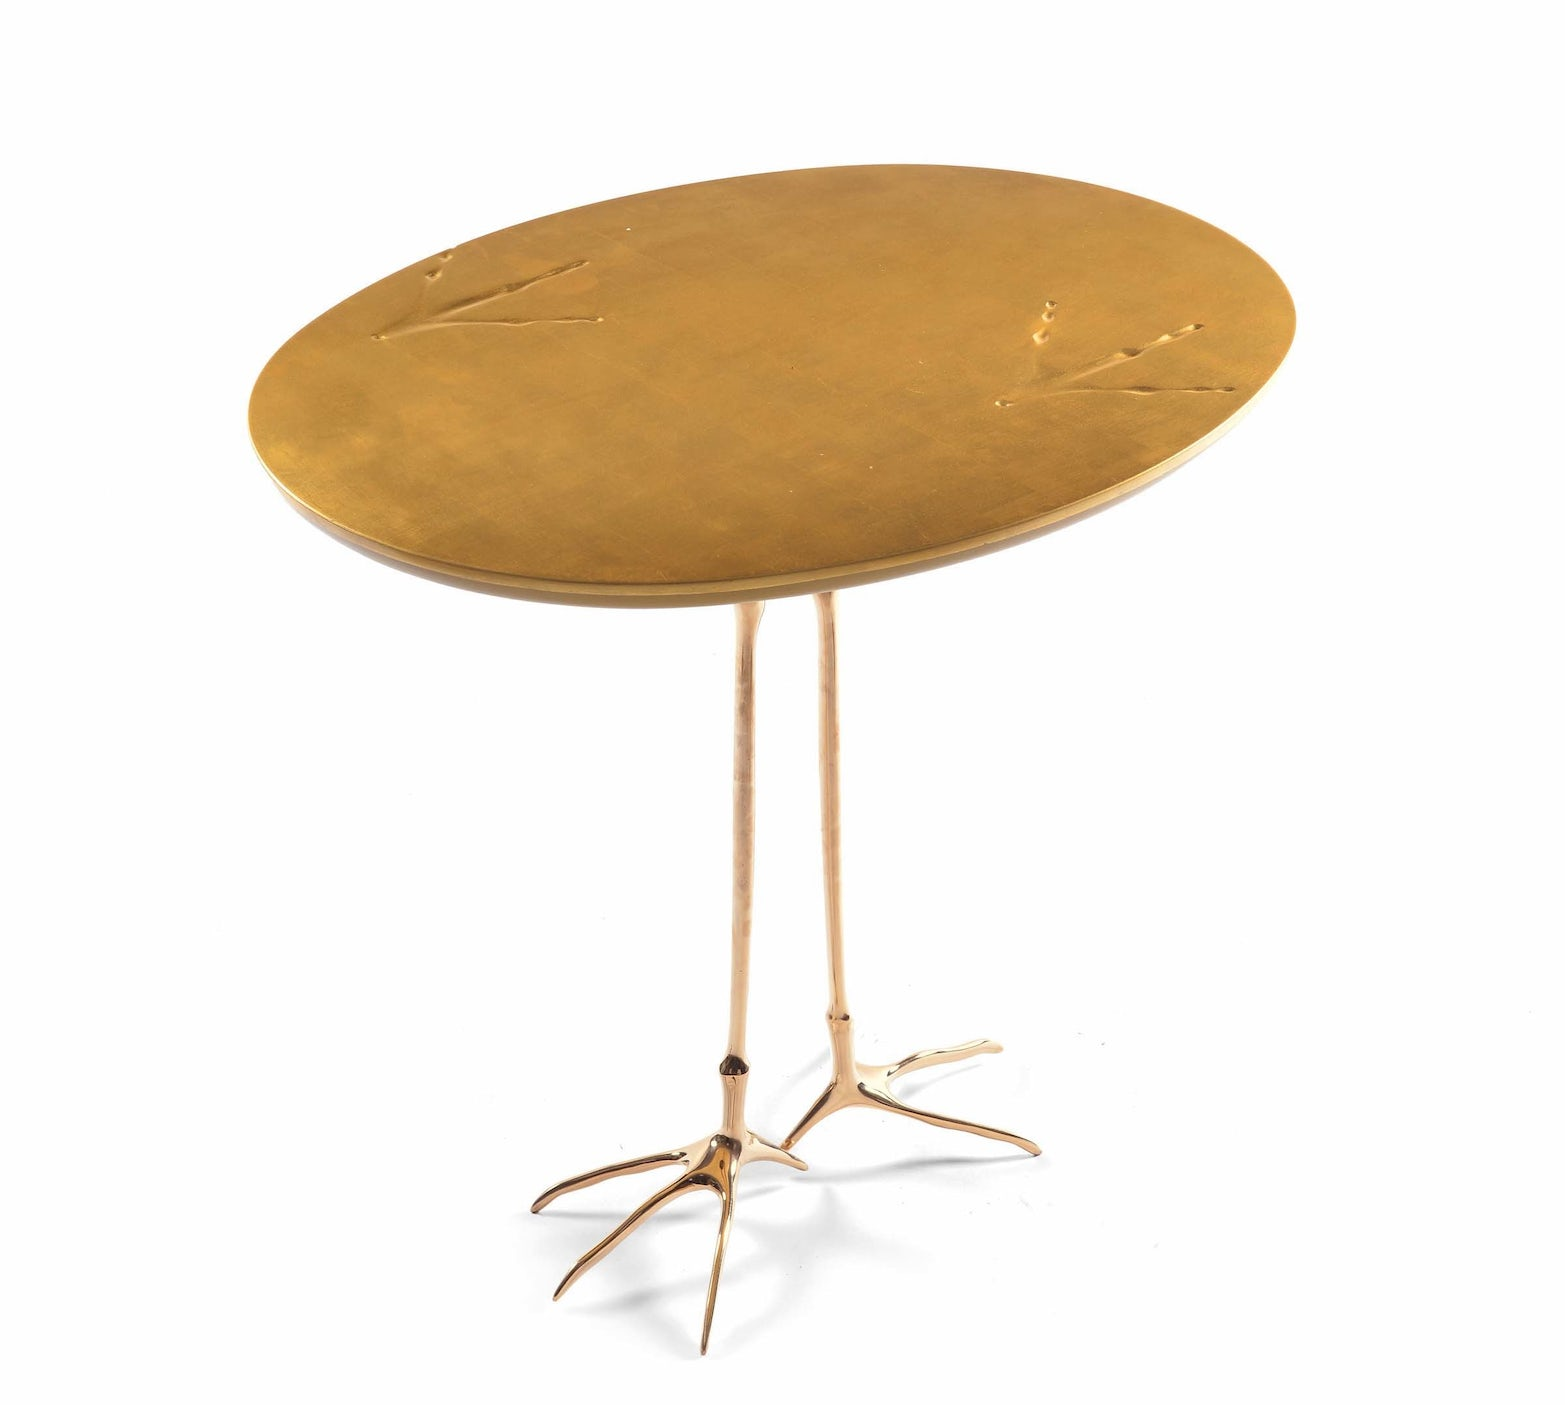 Traccia side table Meret Oppenheim Cassina 1